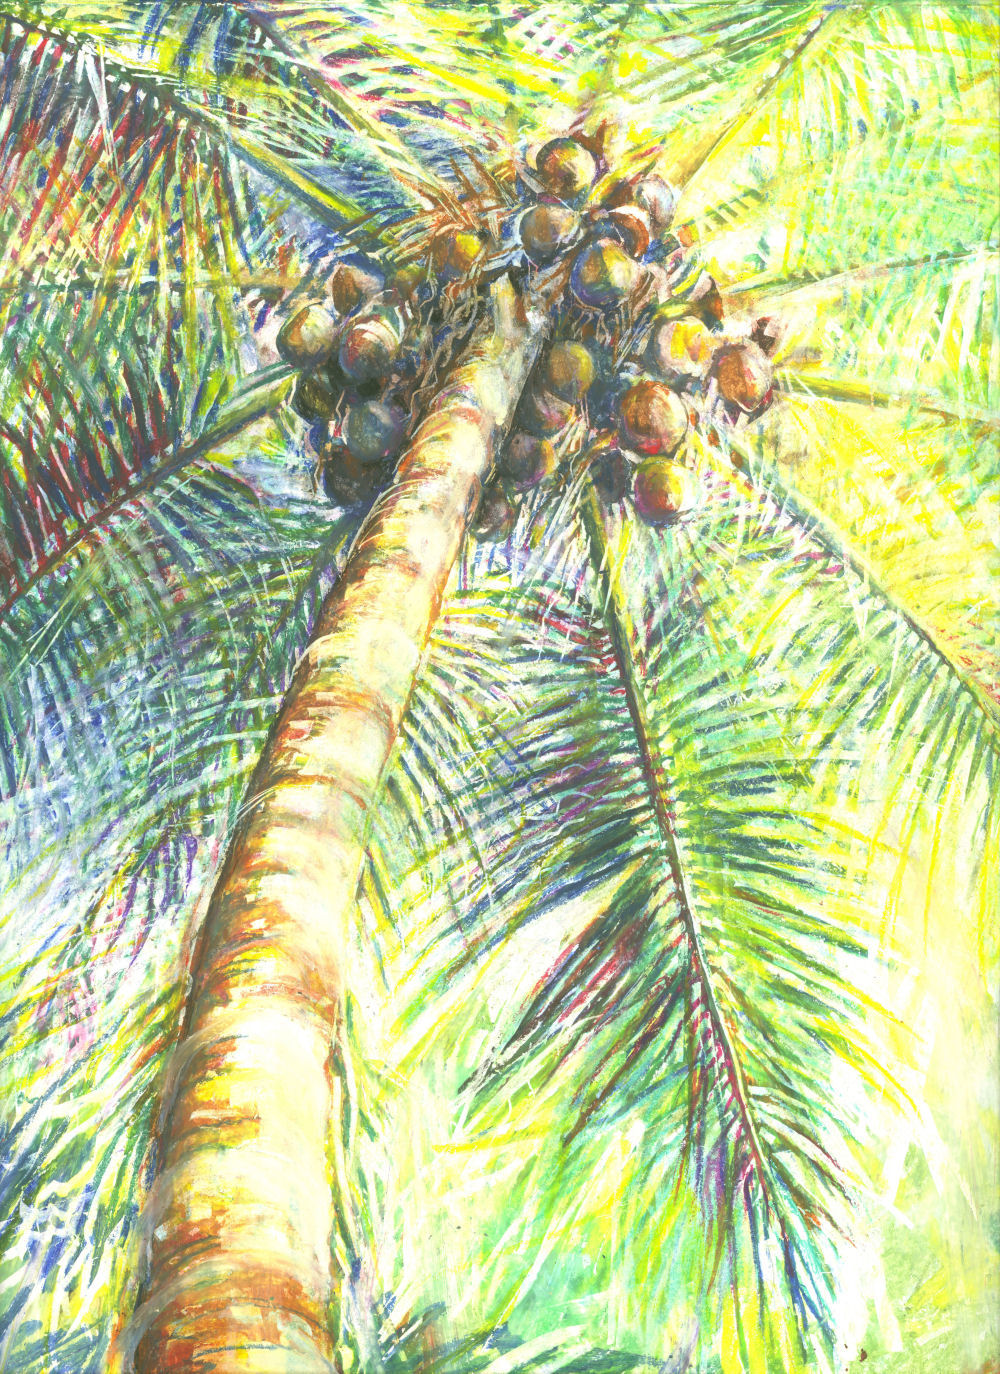 Coconut Palm - Costa Rica - 14 x 11 inches oil pastels on paper